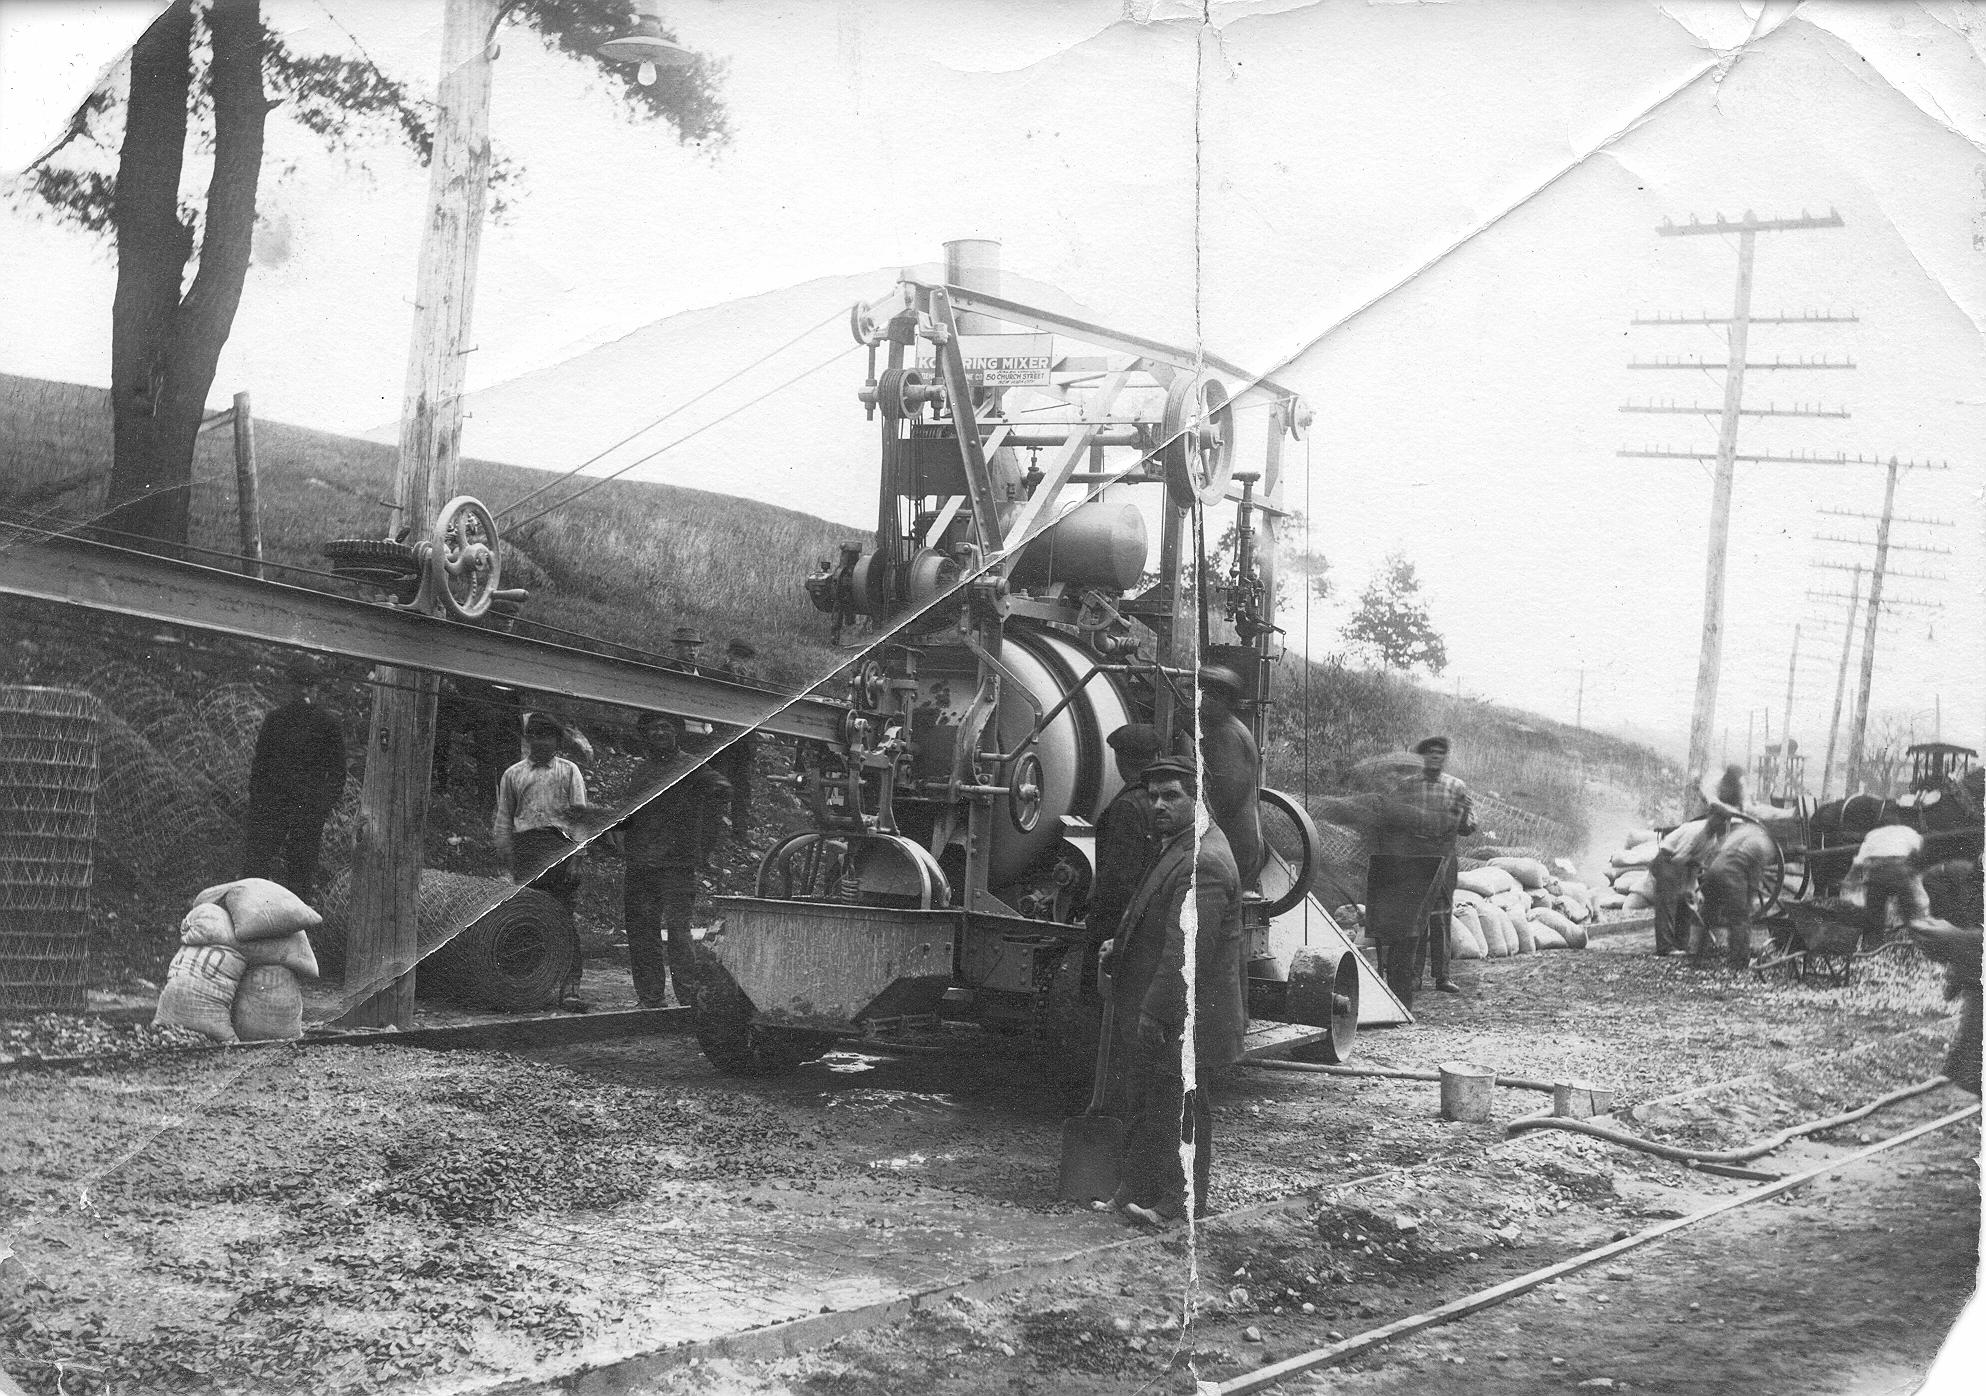 Pouring Rt. 12 in No. Grosvenordale ca 1914